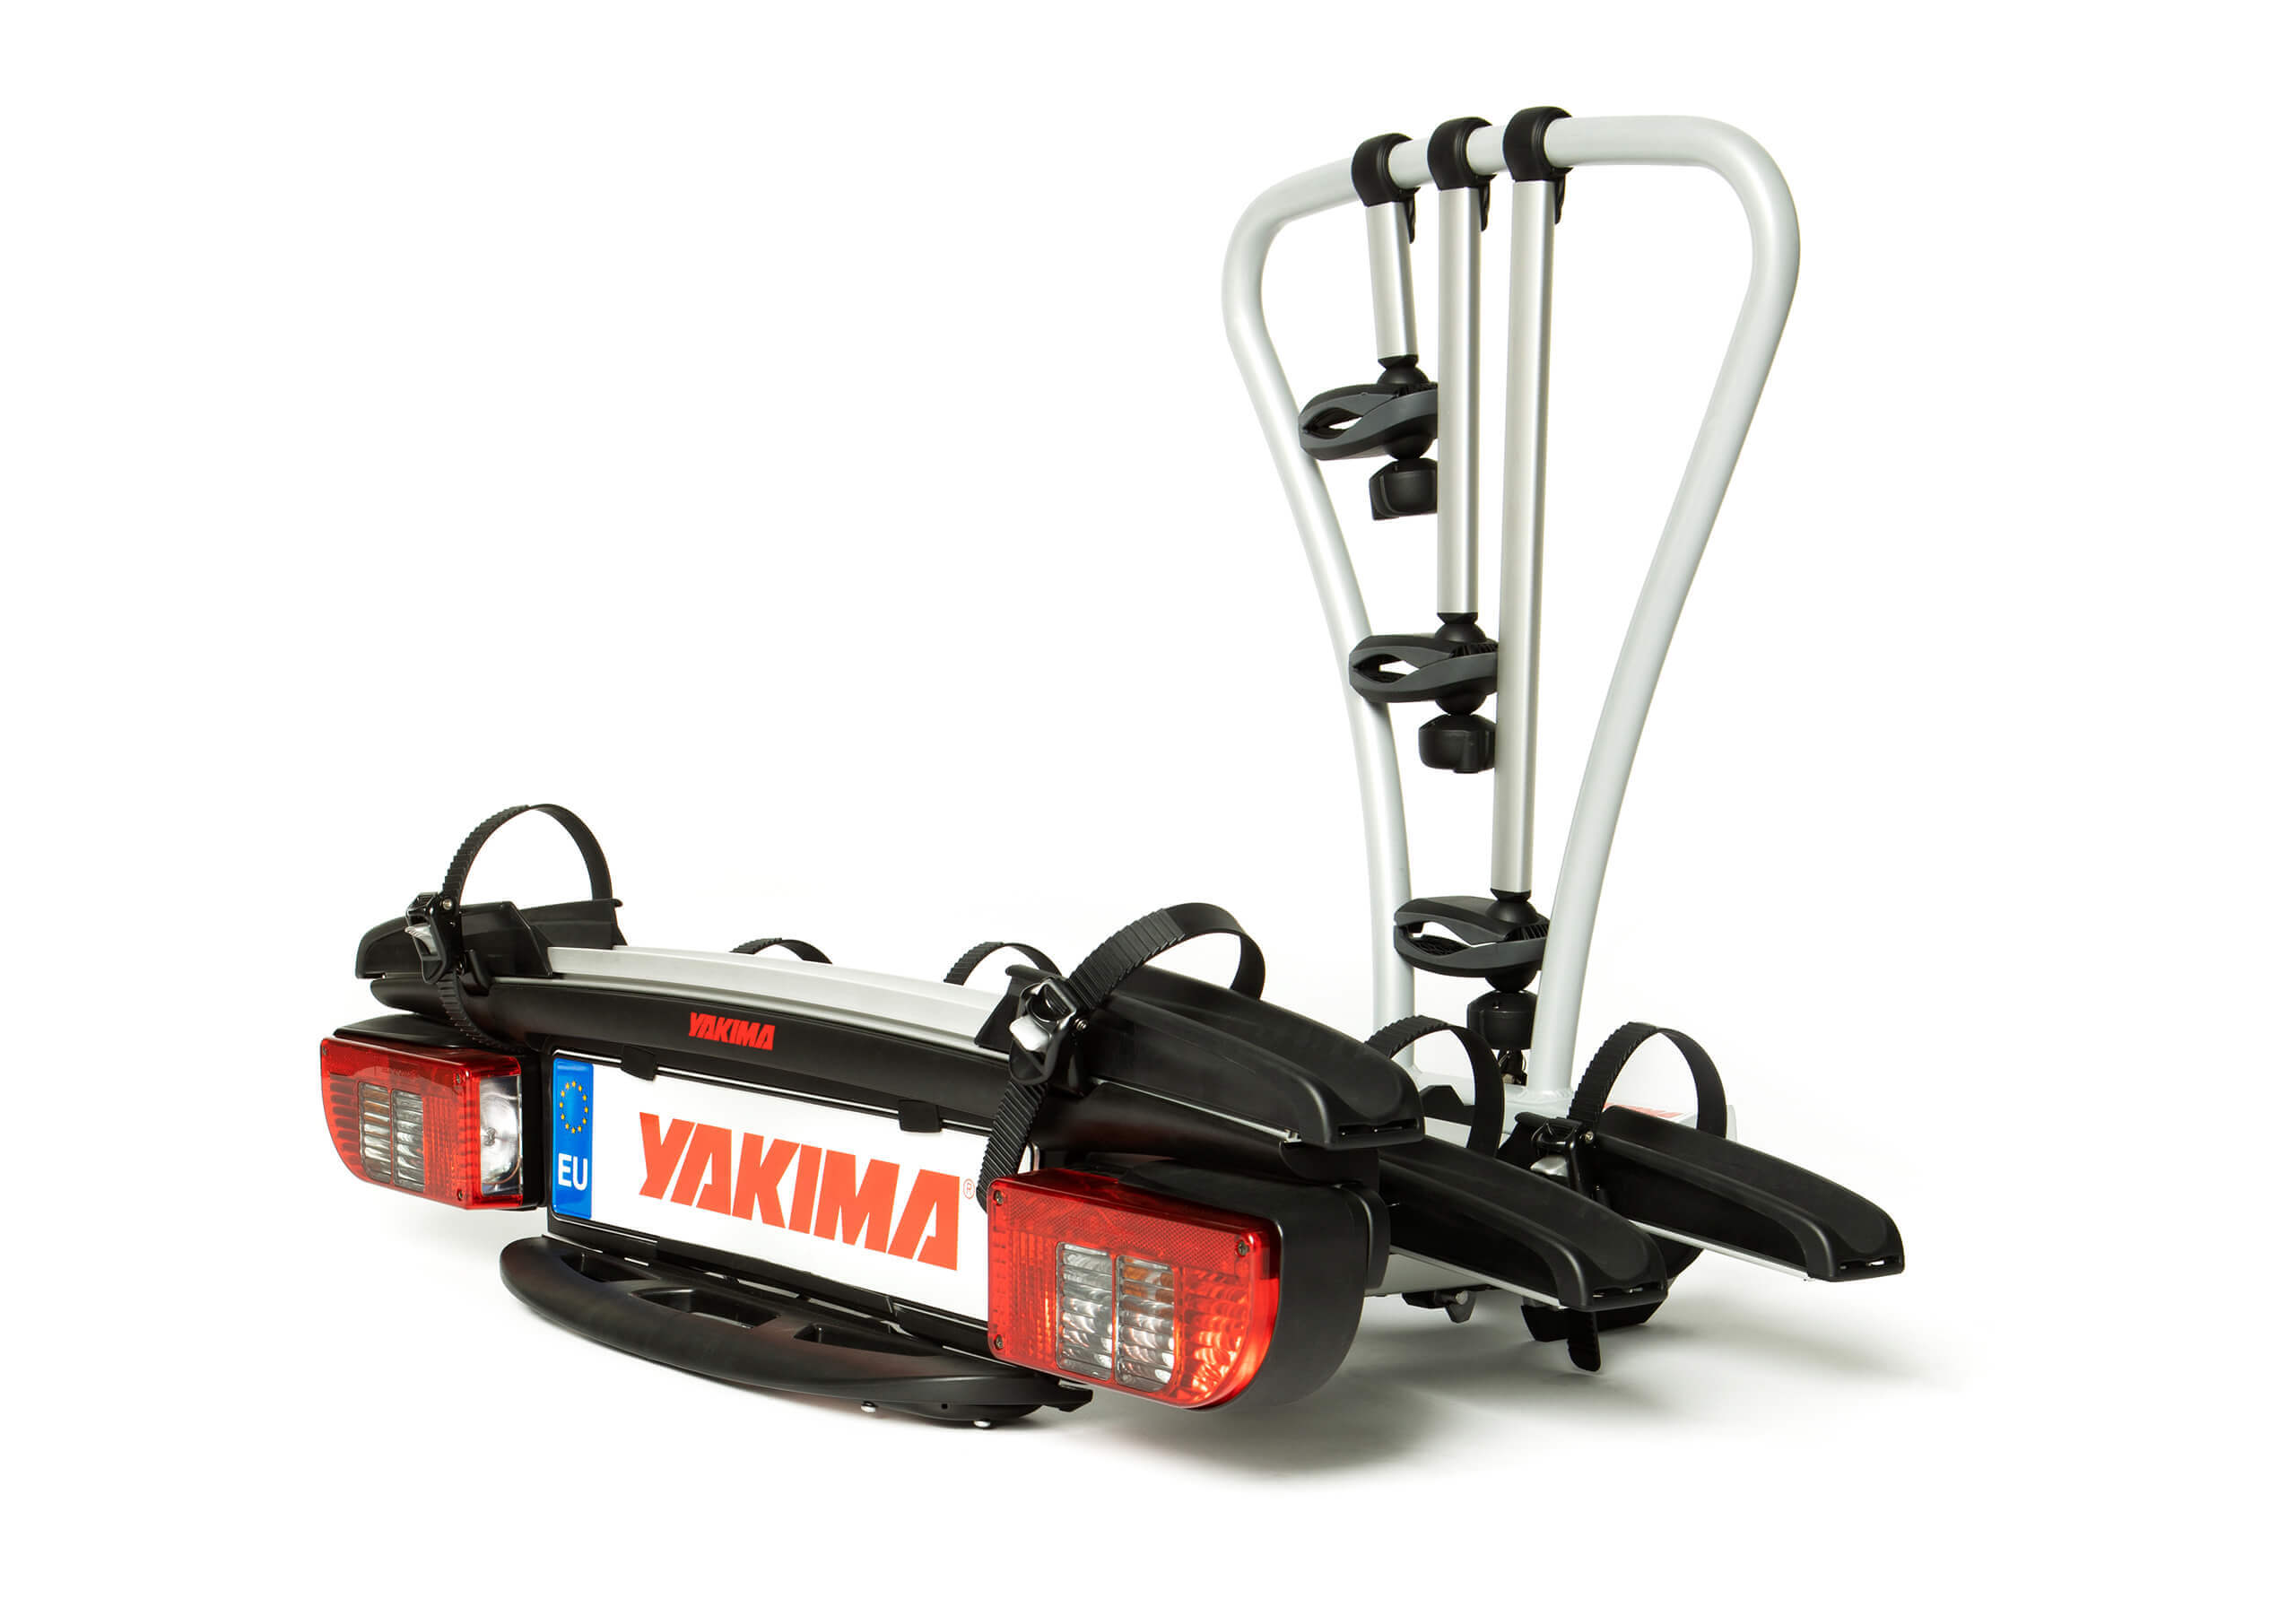 :Yakima JustClick 3 bike tow bar carrier no. 8002487